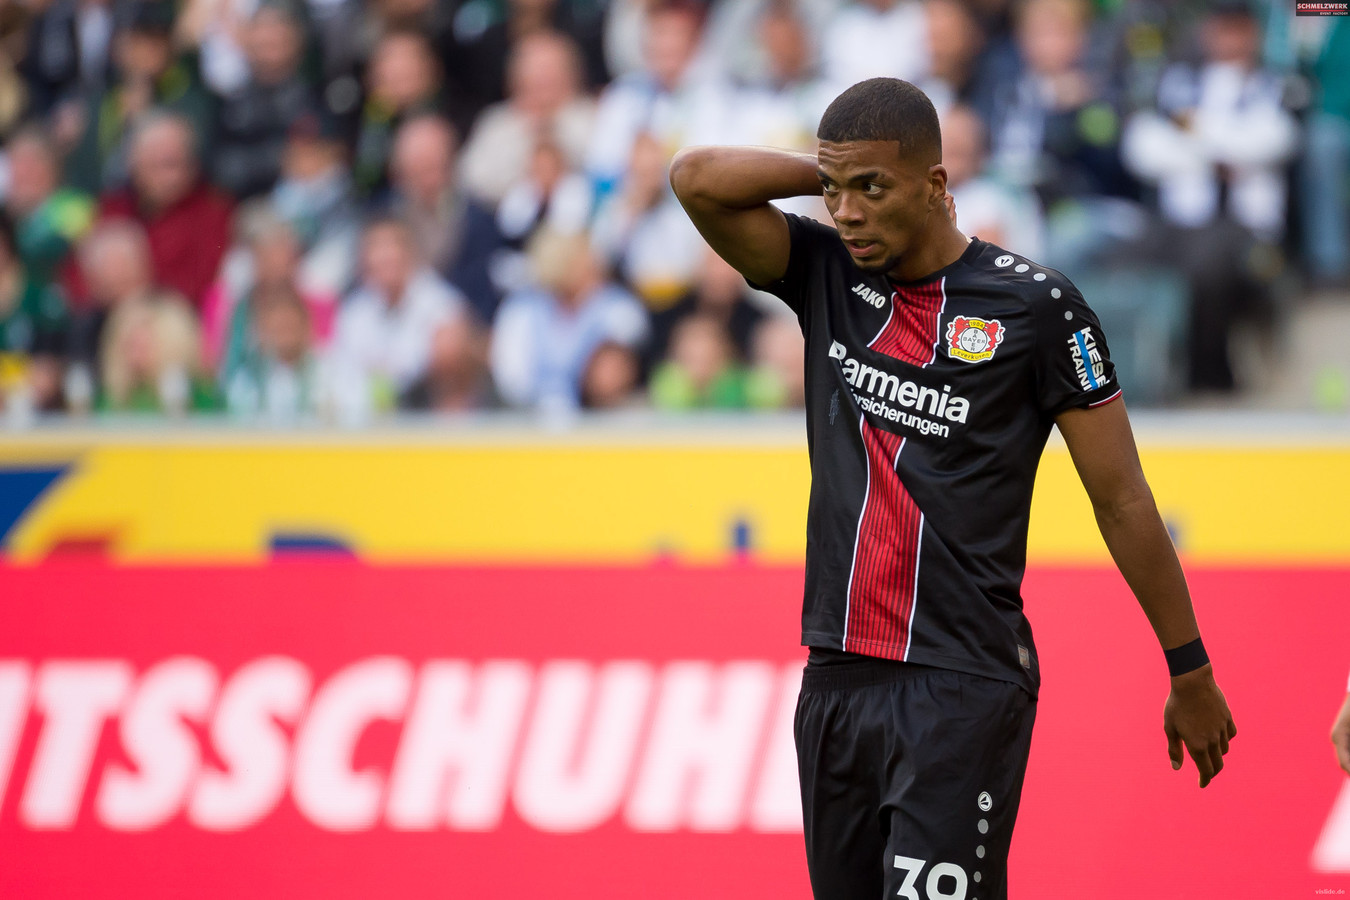 MOENCHENGLADBACH, GERMANY - AUGUST 25: Benjamin Henrichs of Bayer 04 Leverkusen looks on during the Bundesliga match between Borussia Moenchengladbach and Bayer 04 Leverkusen at Borussia-Park on August 25, 2018 in Moenchengladbach, Germany. (Photo by TF-Images/Getty Images)